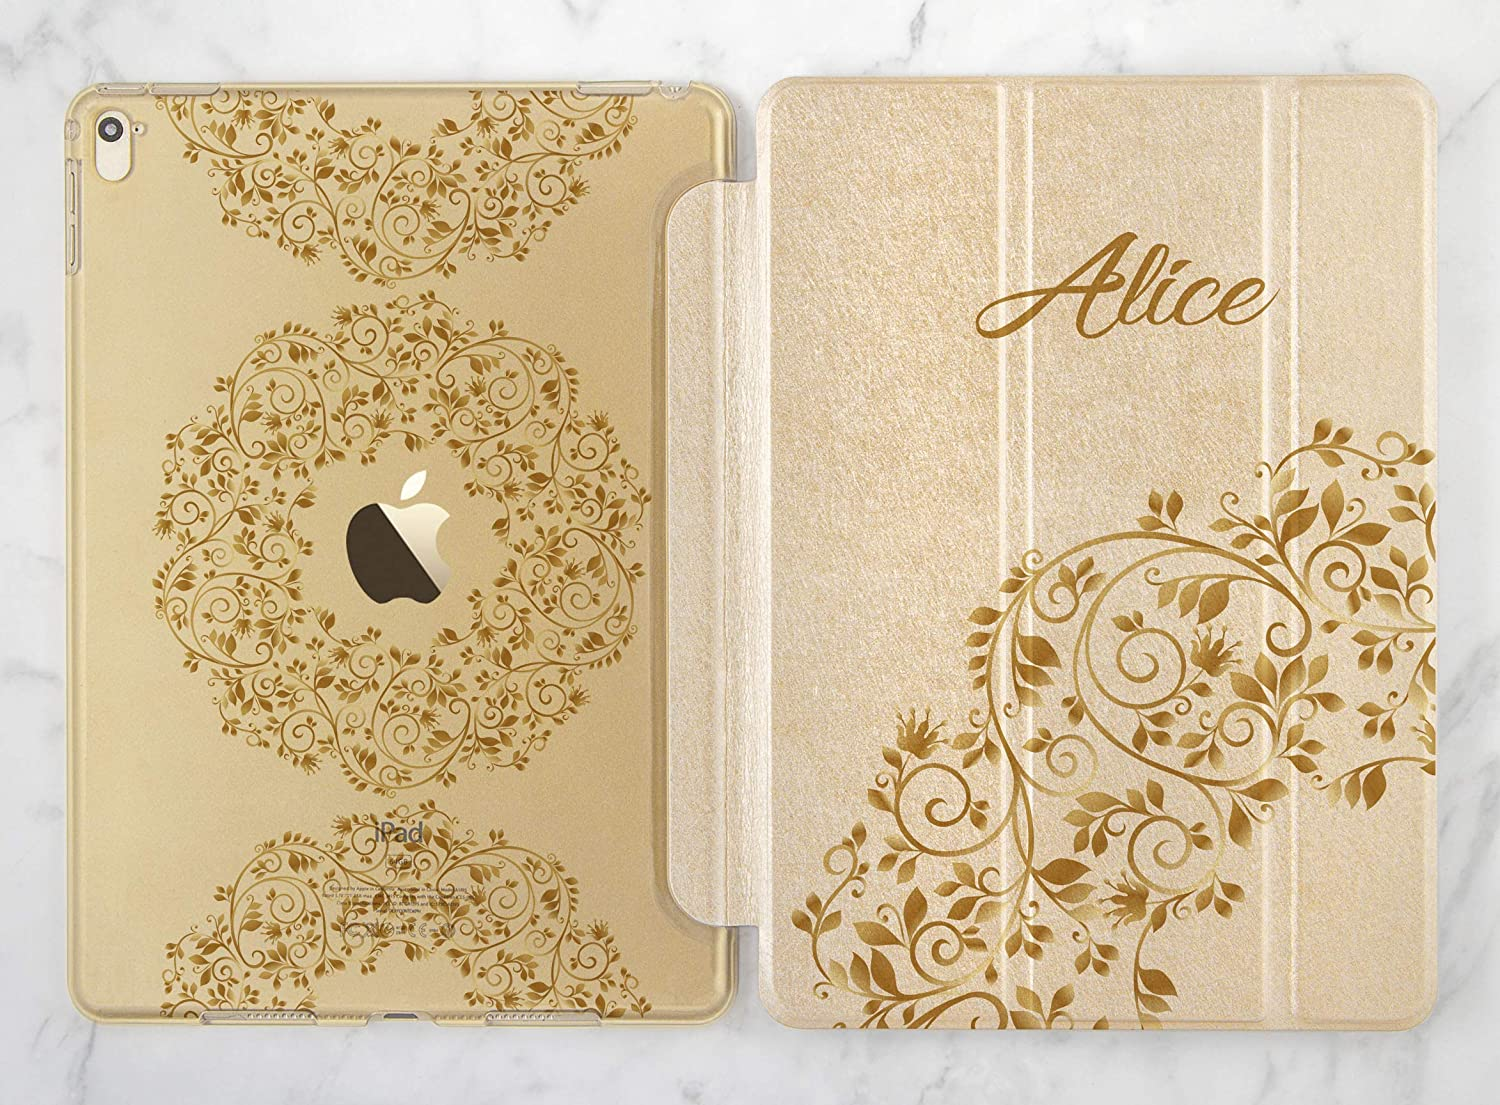 Personalized Floral Ornament Gold Rose Gold Smart Cover Case For Apple iPad Air 1 2 iPad Mini 1 2 3 4 iPad Pro 9.7 10.5 12.9 iPad 9.7 2017 2018 Inch